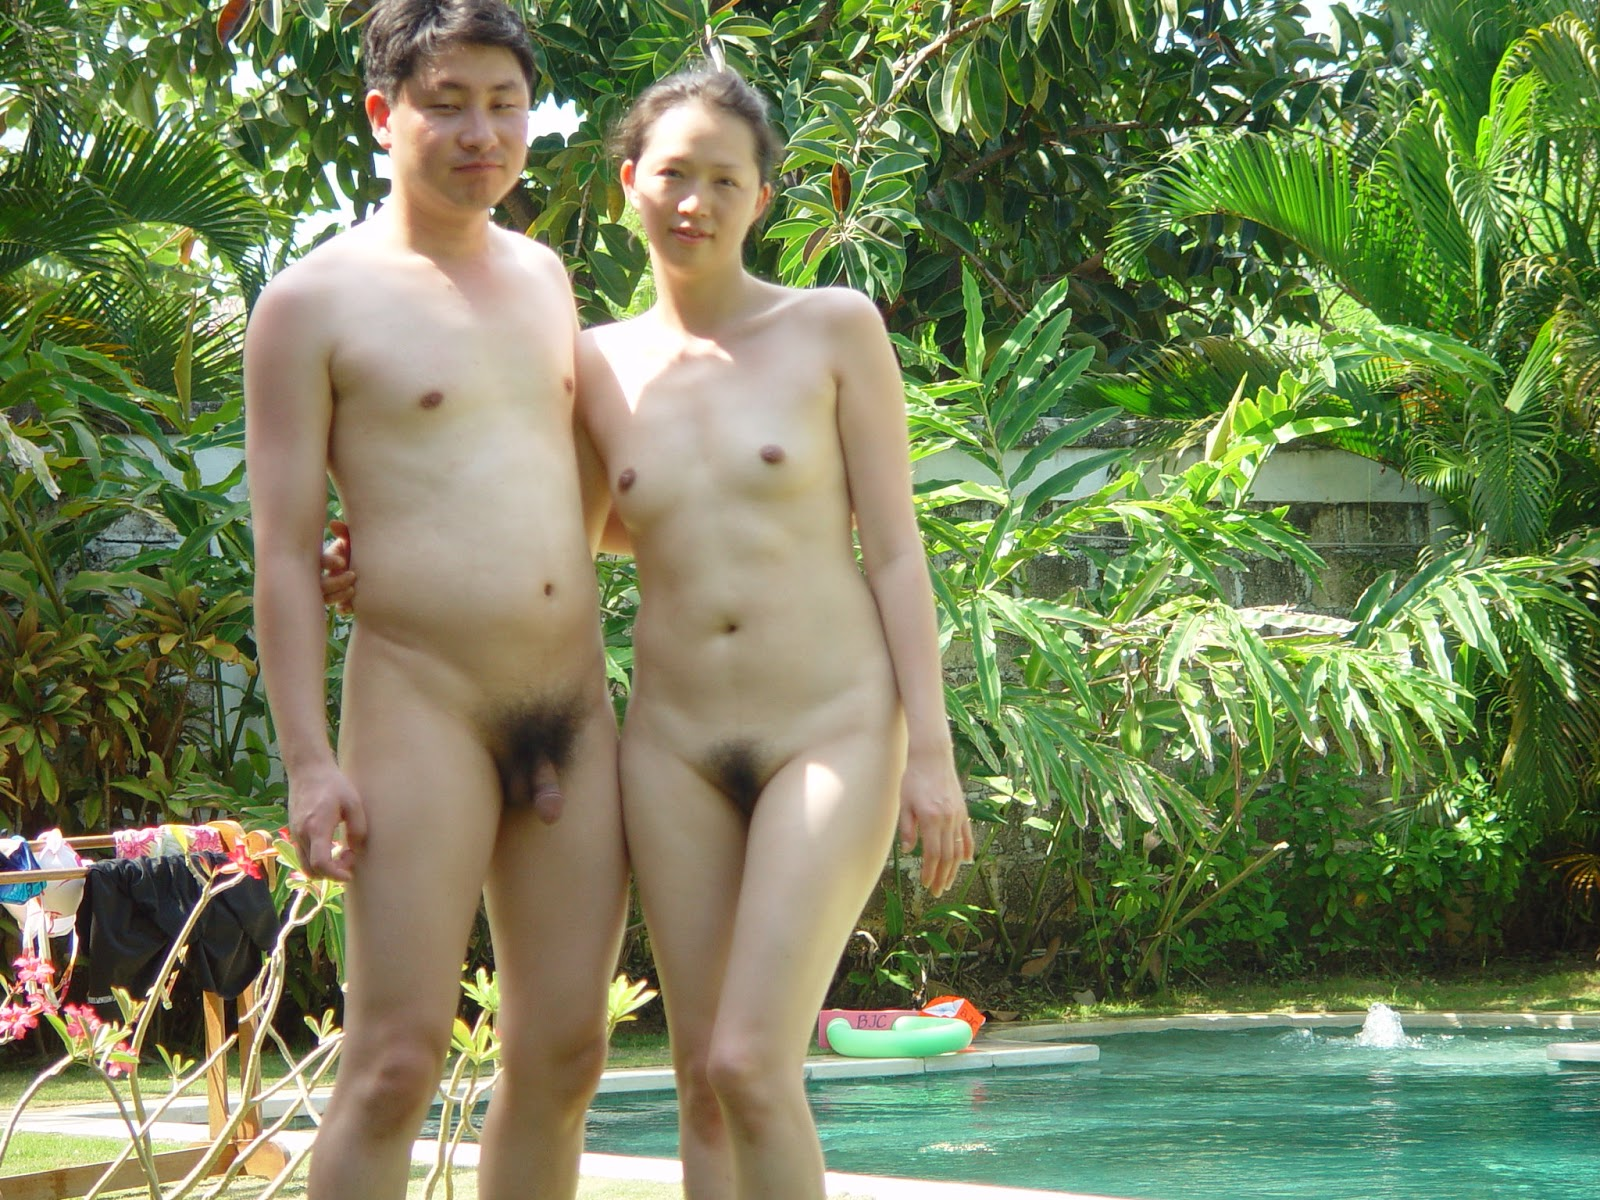 Authoritative point new korean wives nude apologise, but